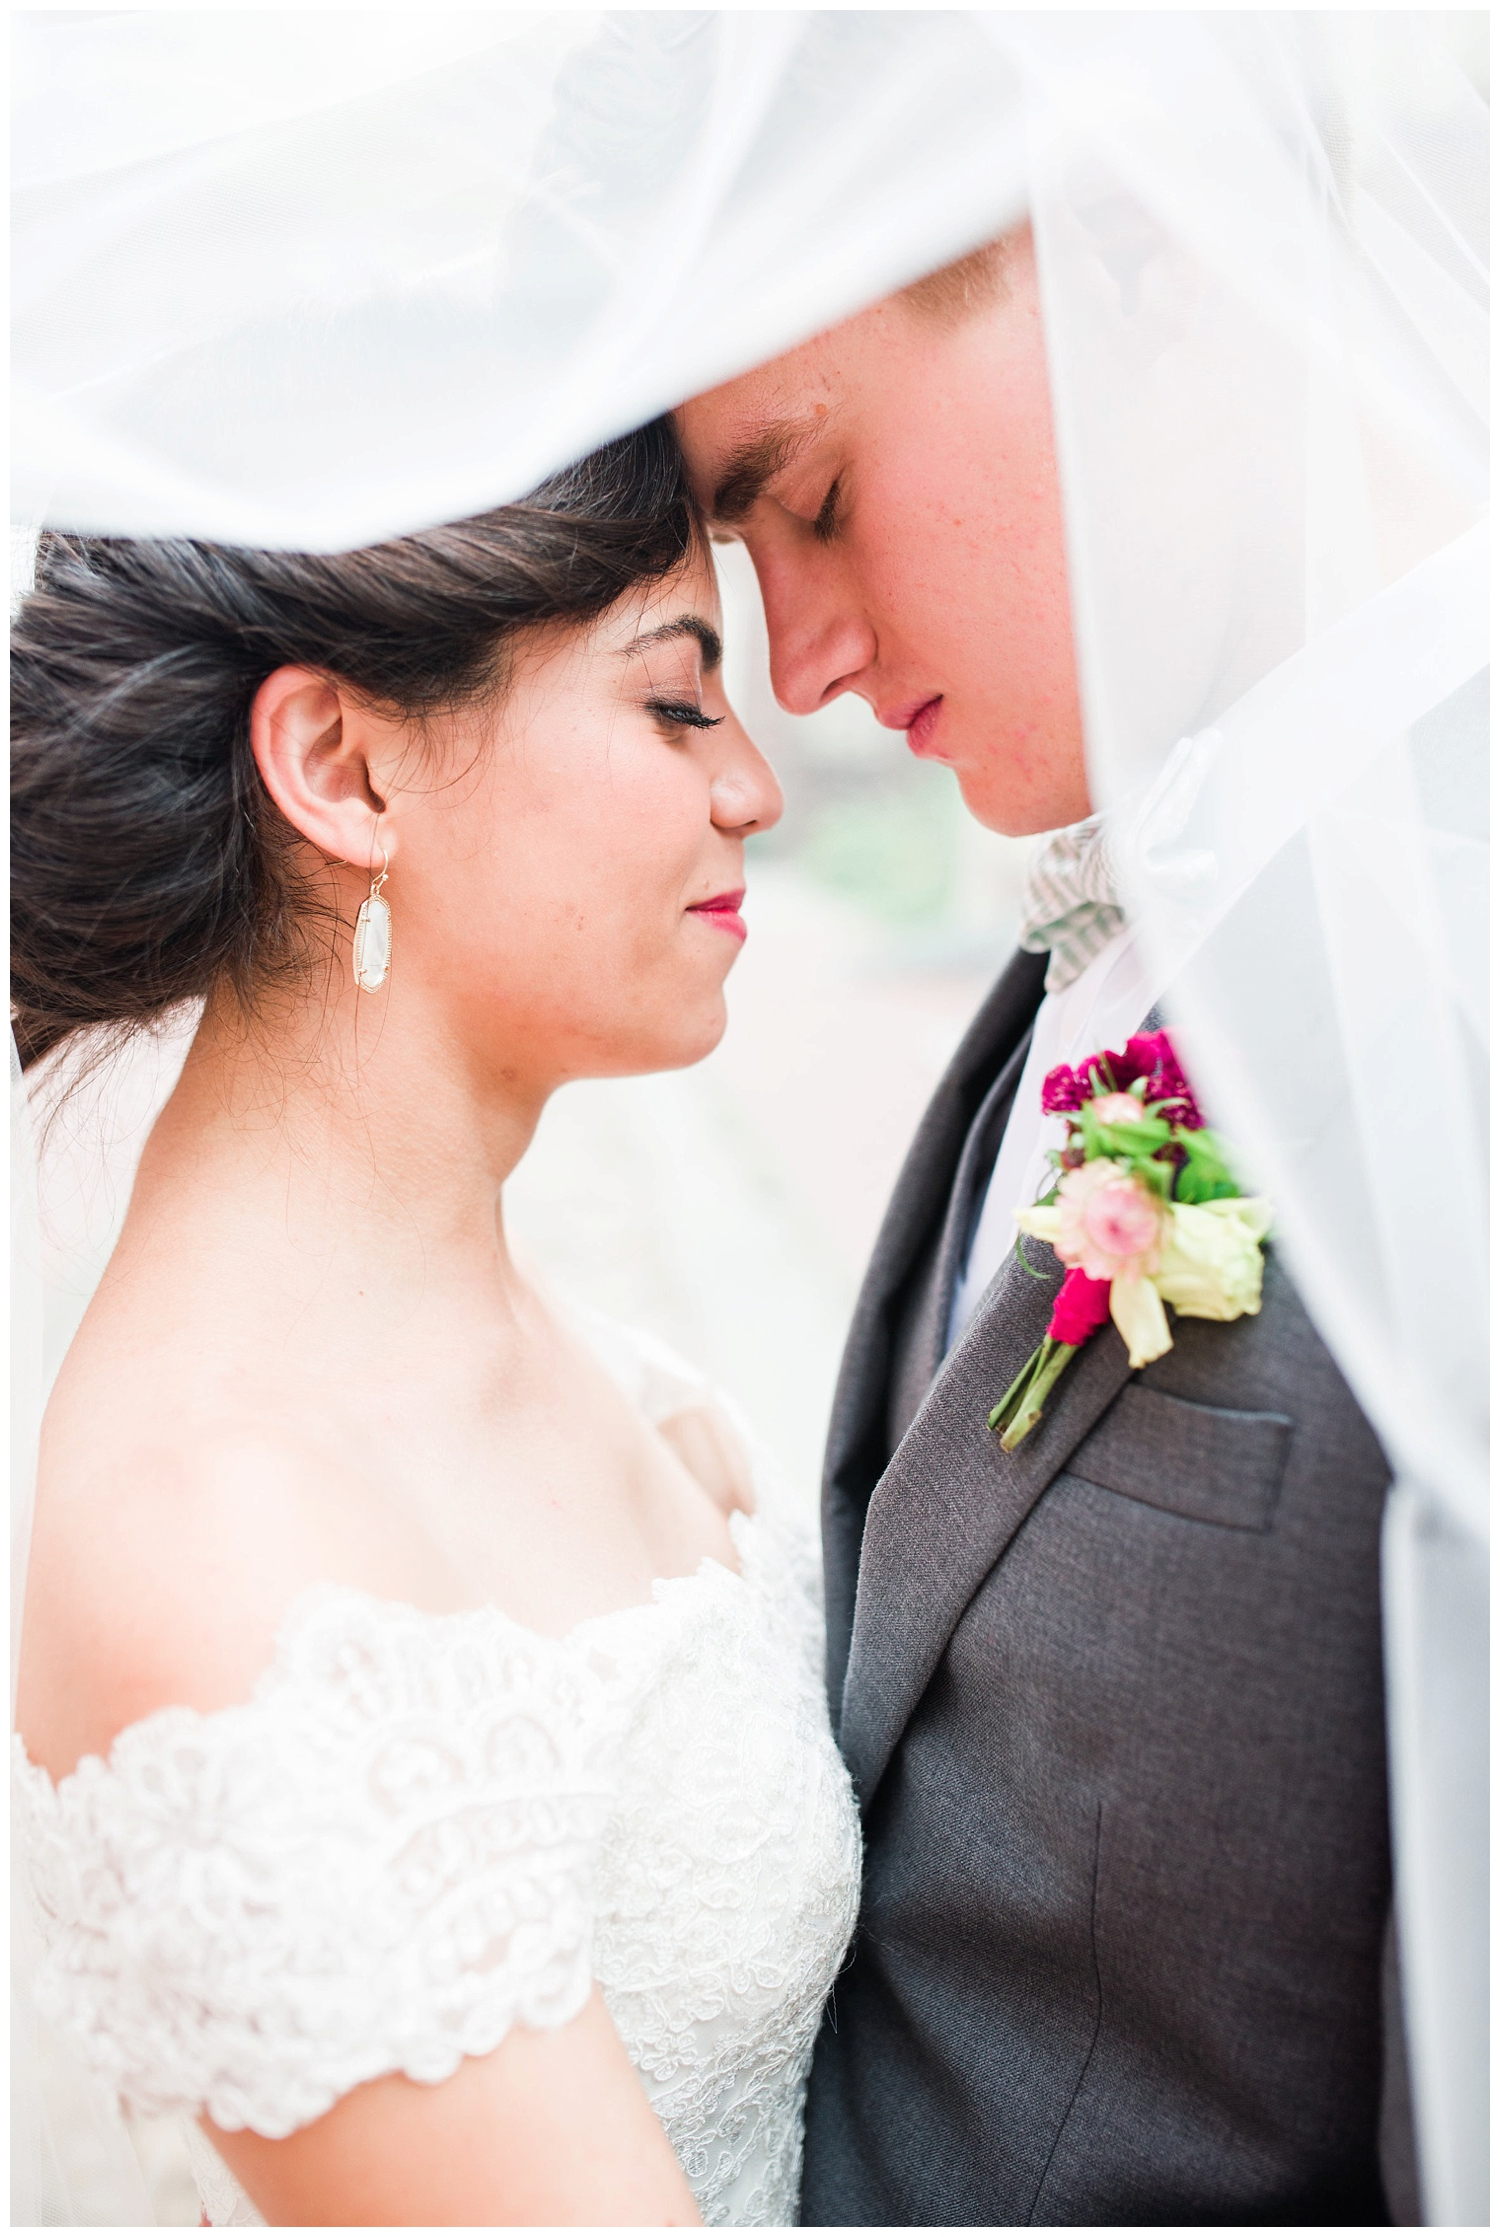 New York, New Jersey and Pennsylvania wedding vendors, resources and inspiration for the modern couple